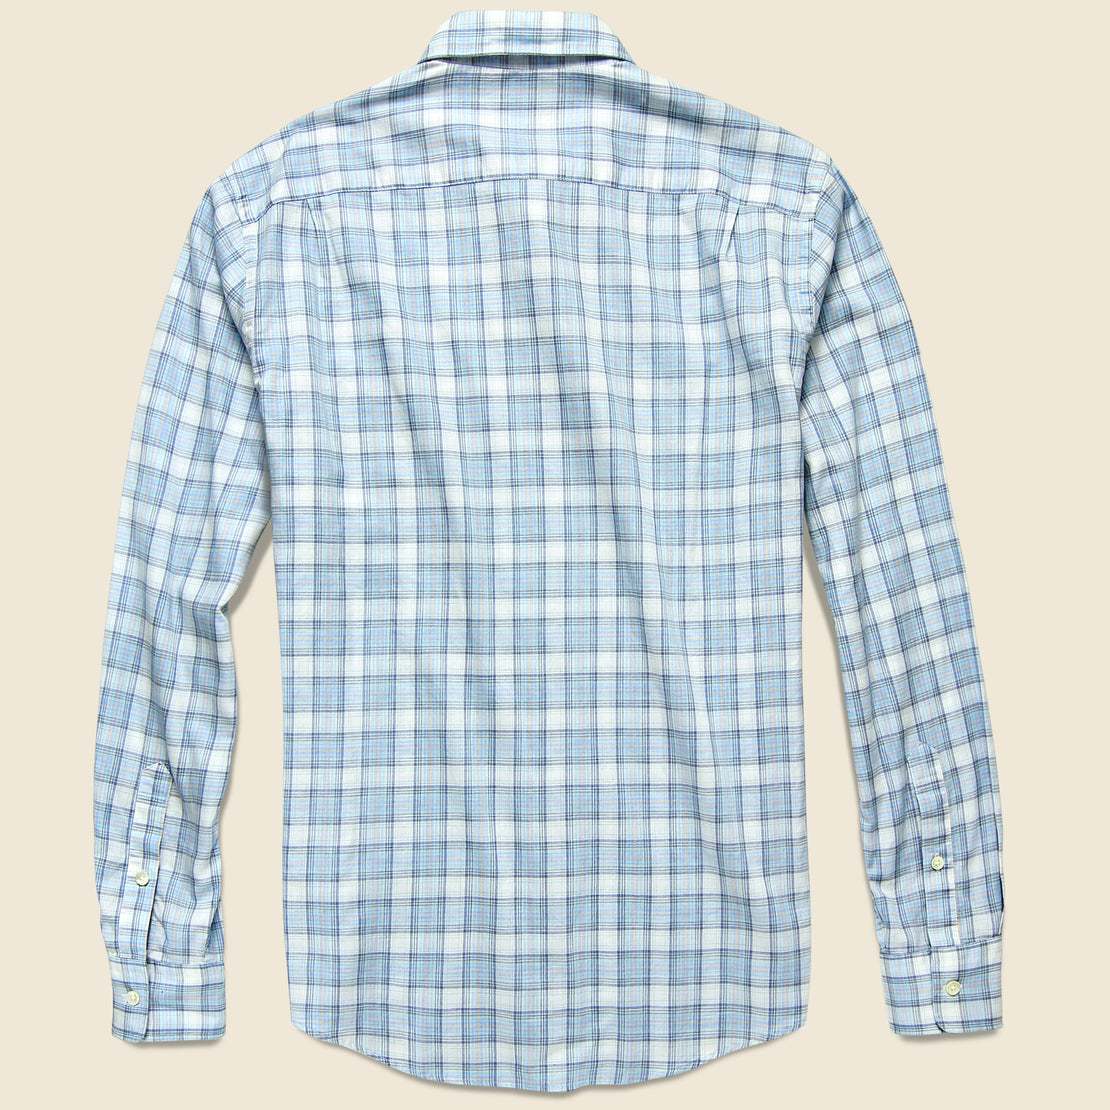 Ventura Shirt - Teal/White/Coral